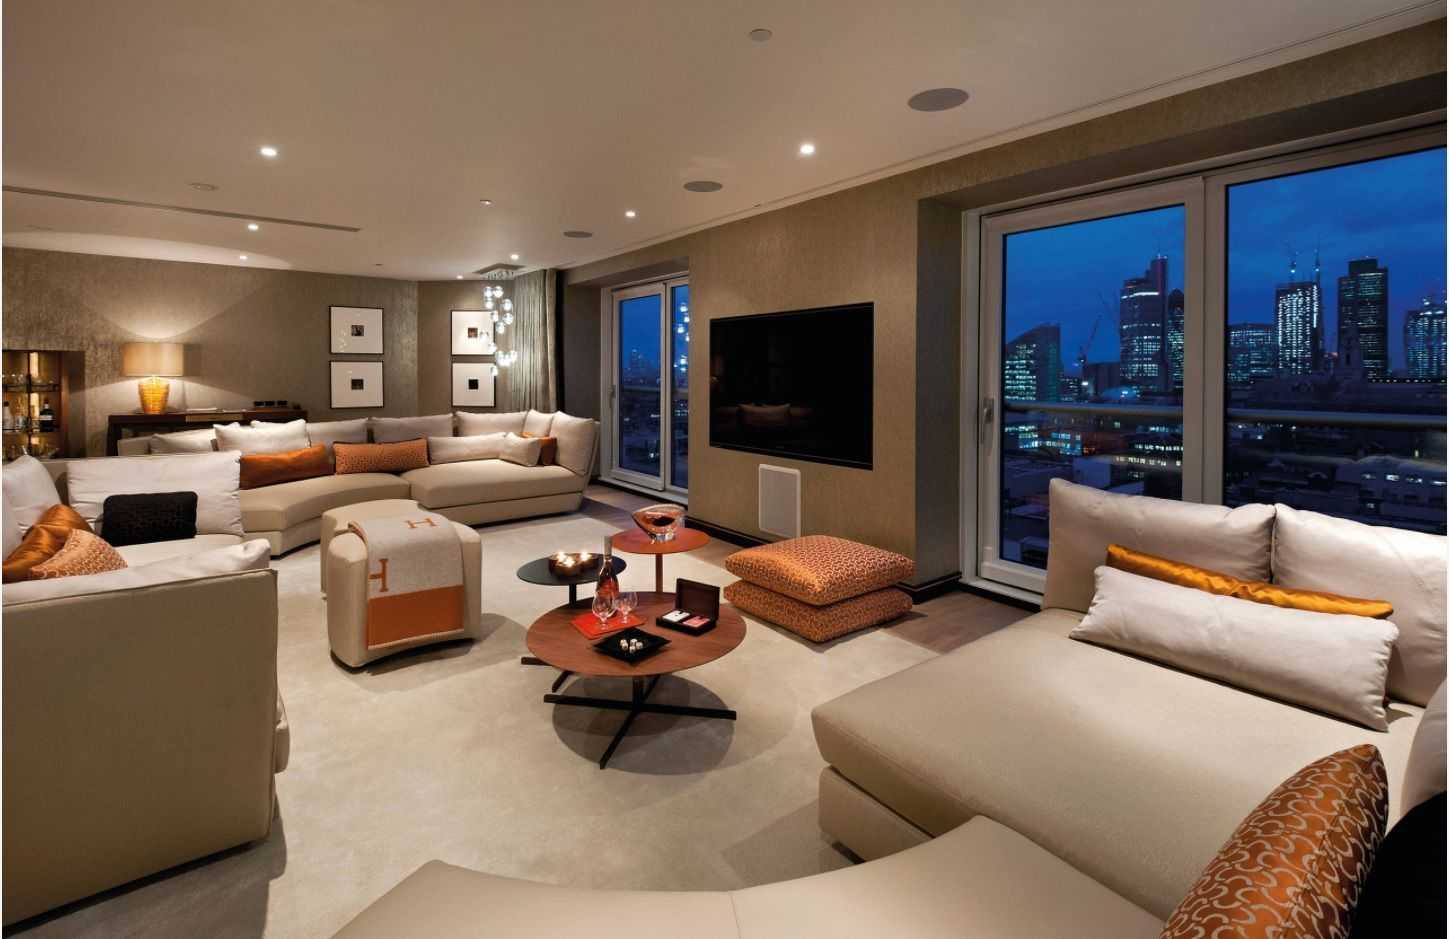 Solid gray colored Casual living room lounge